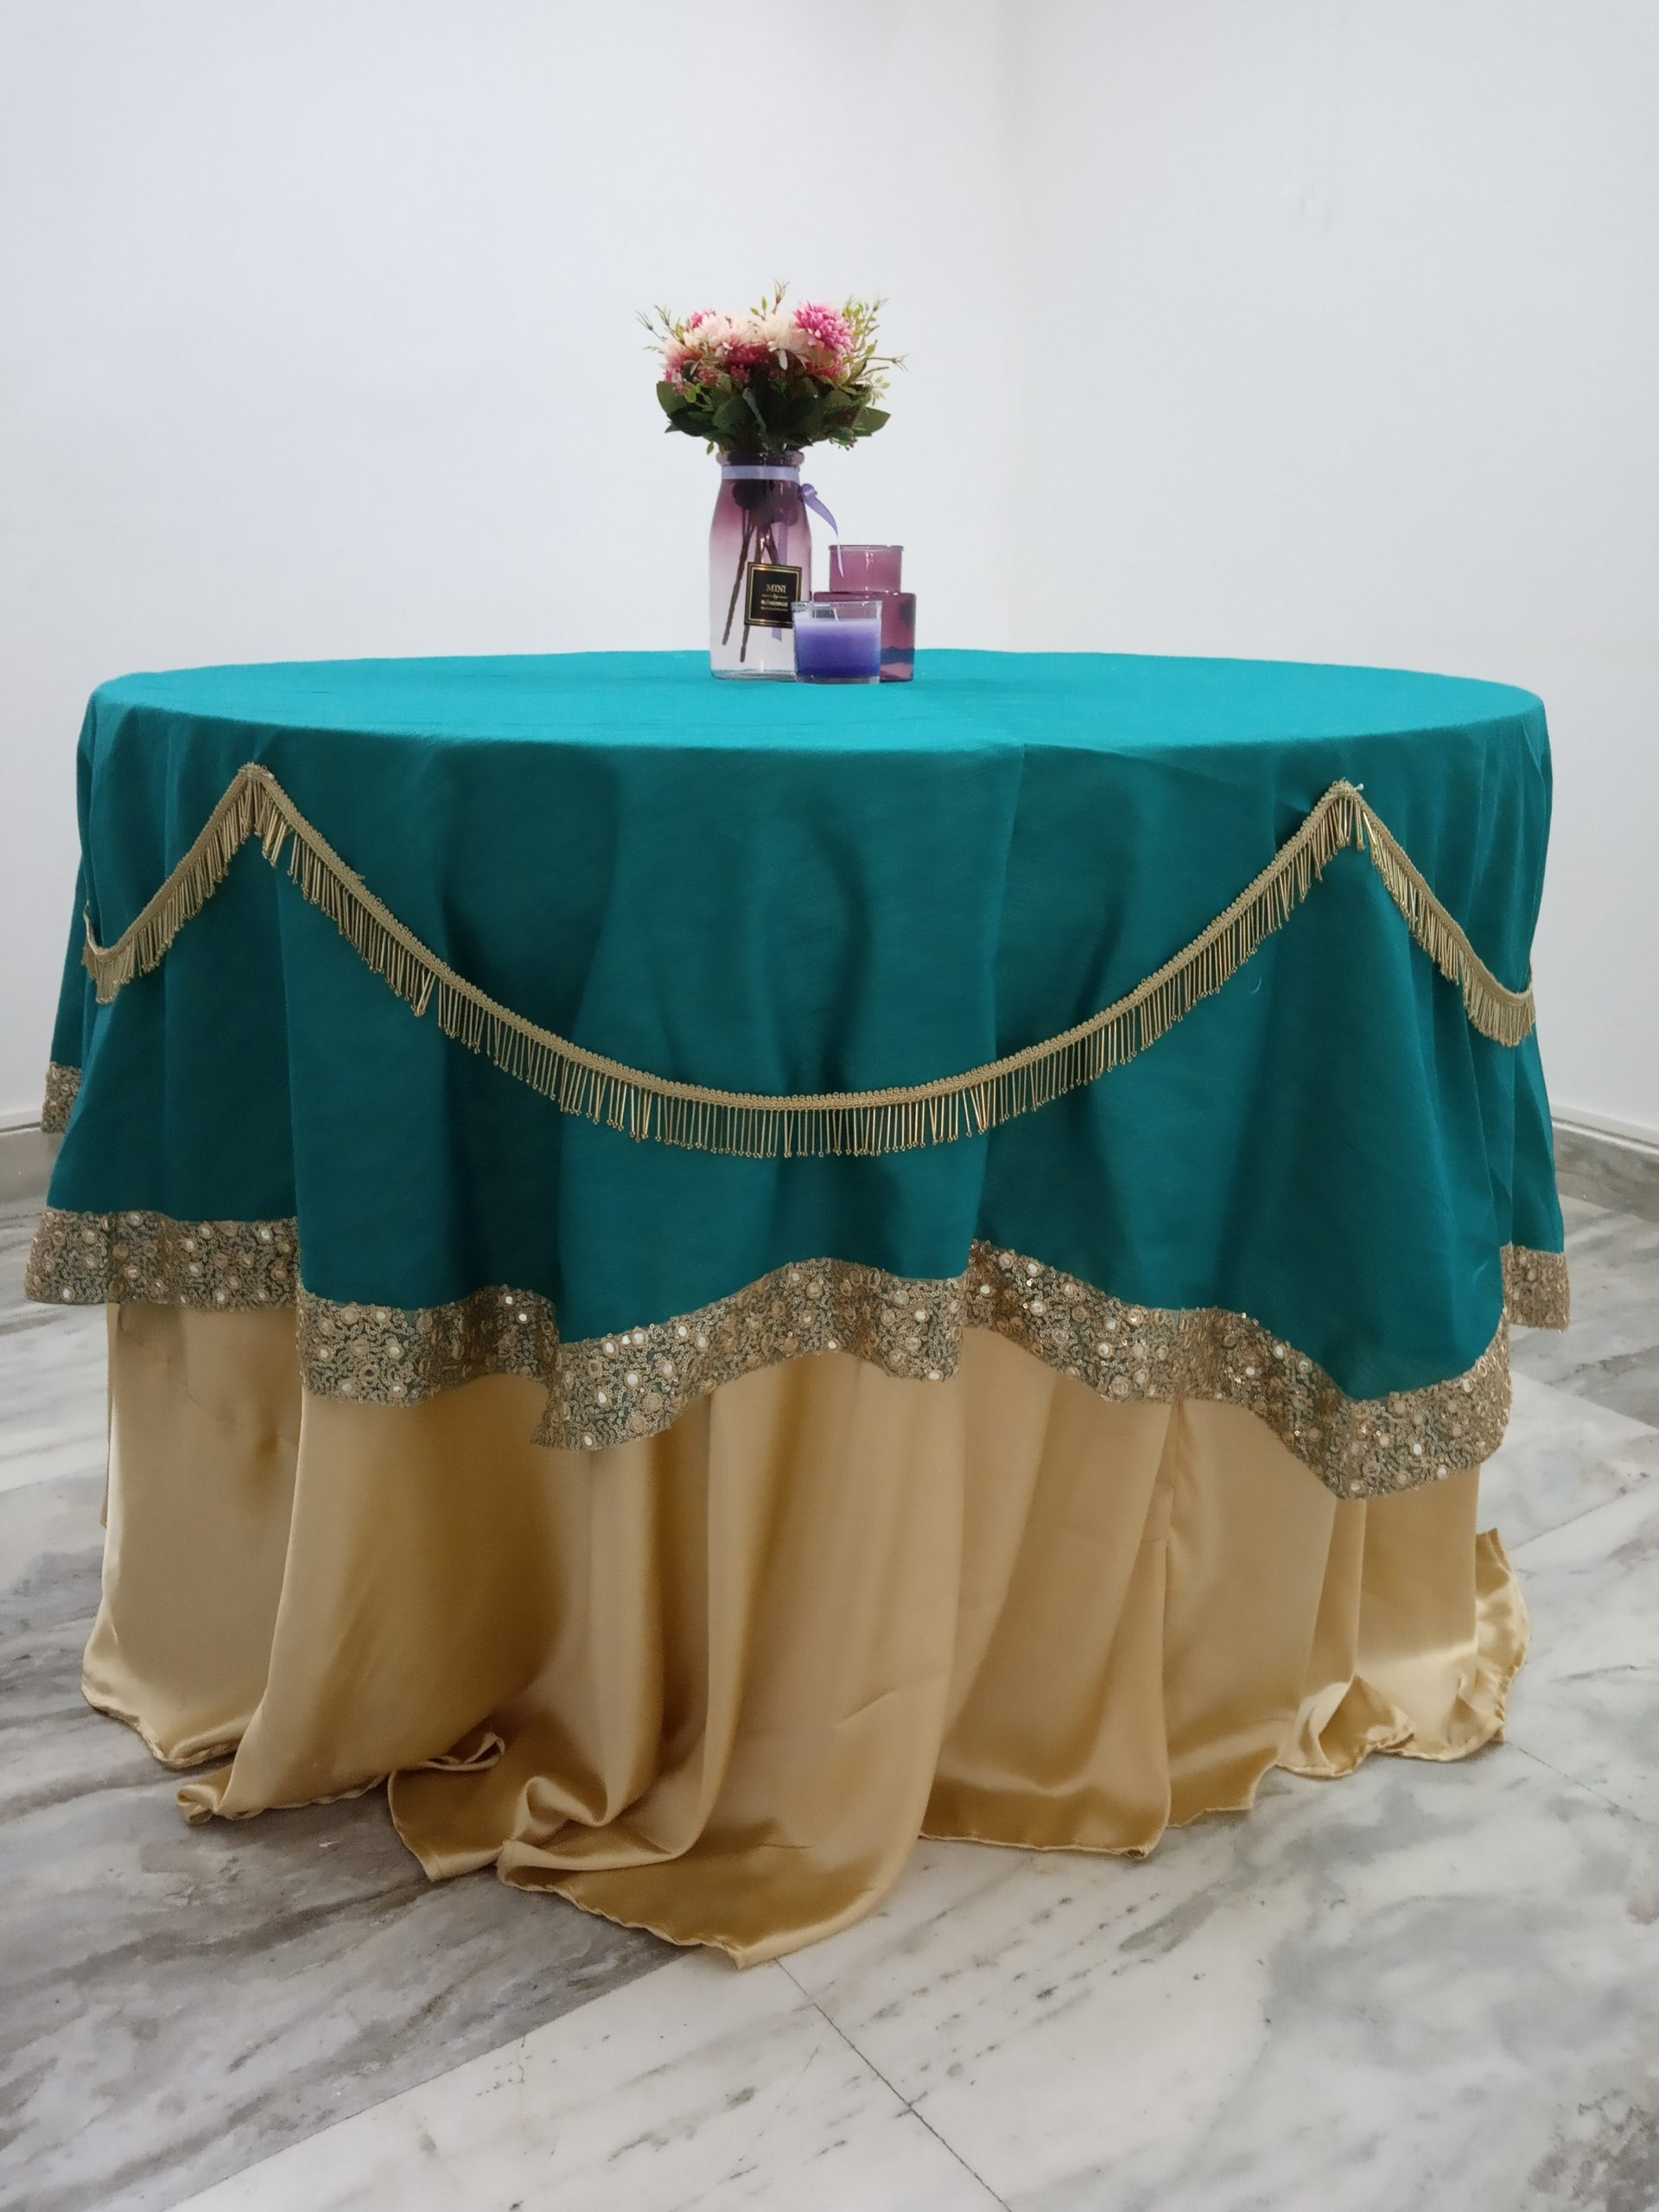 Teal green overlay with golden lace